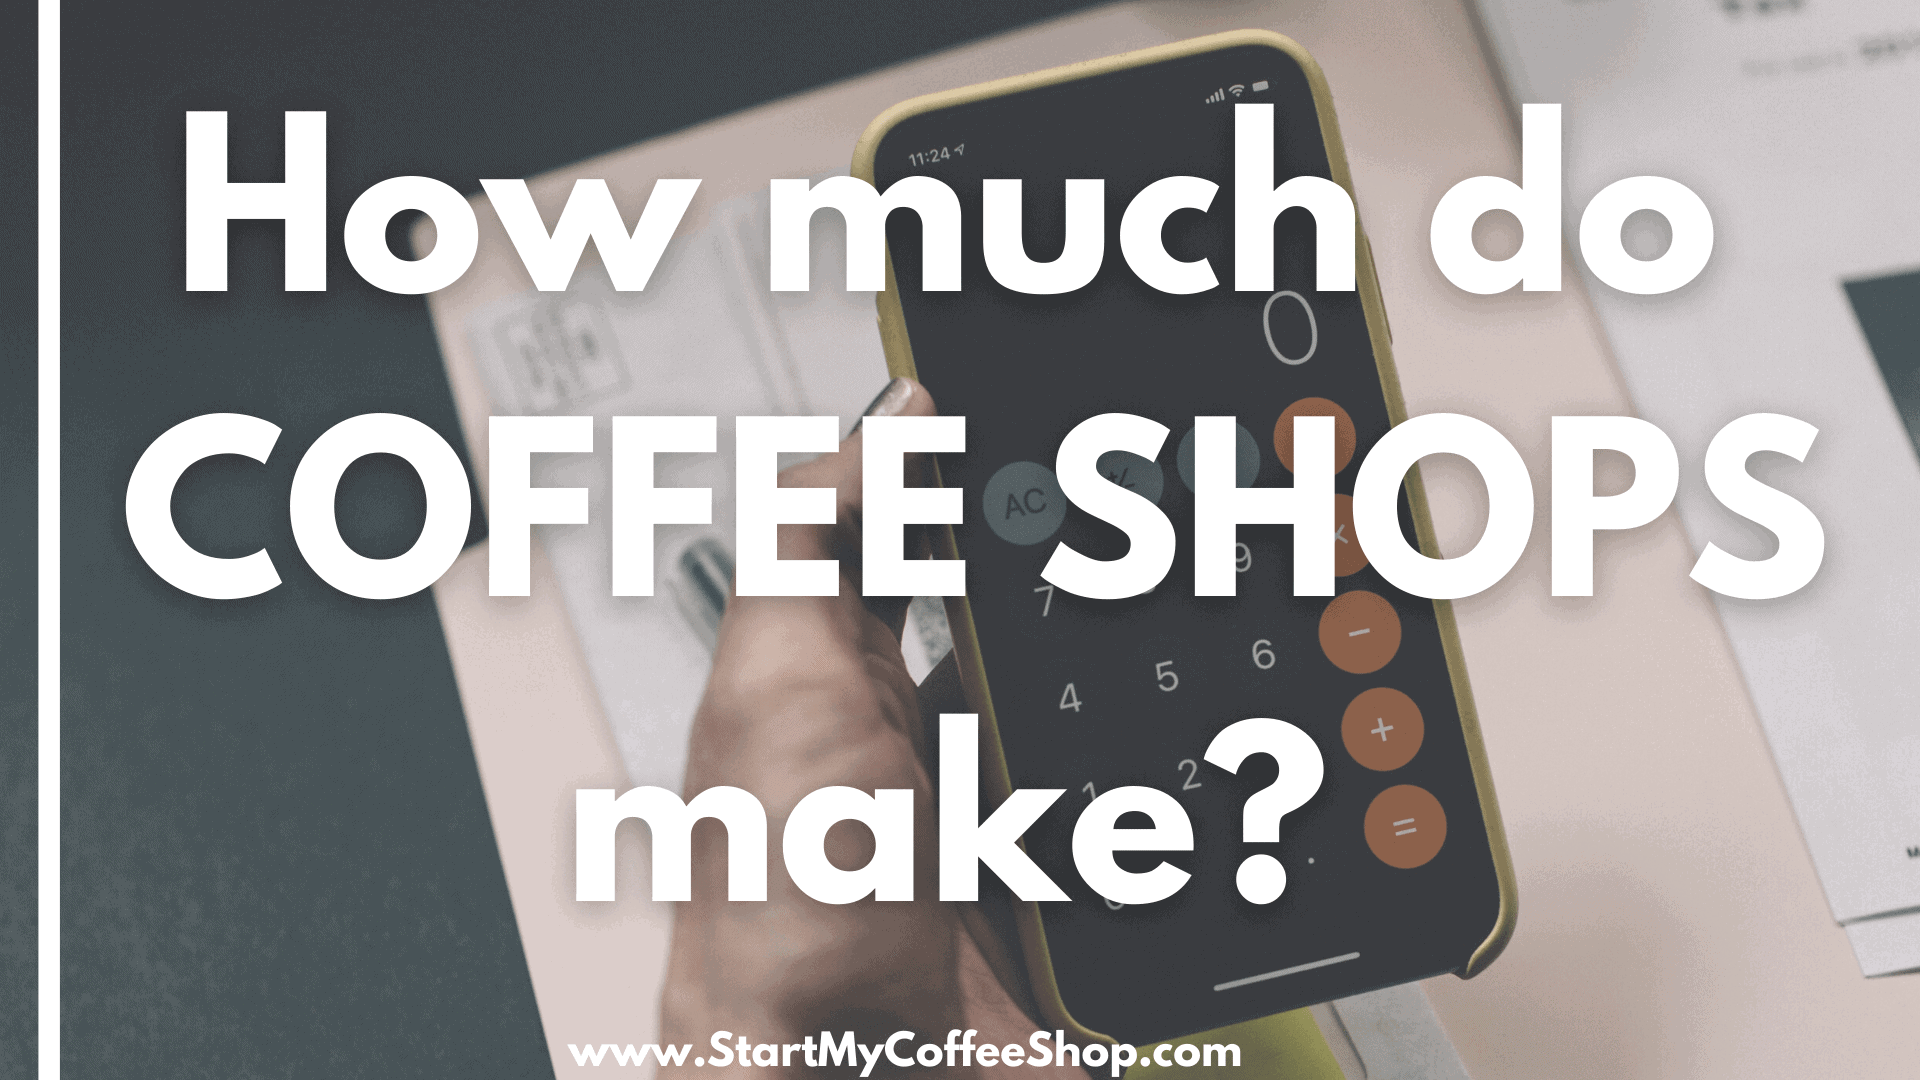 How Much Do Coffee Shops Make?